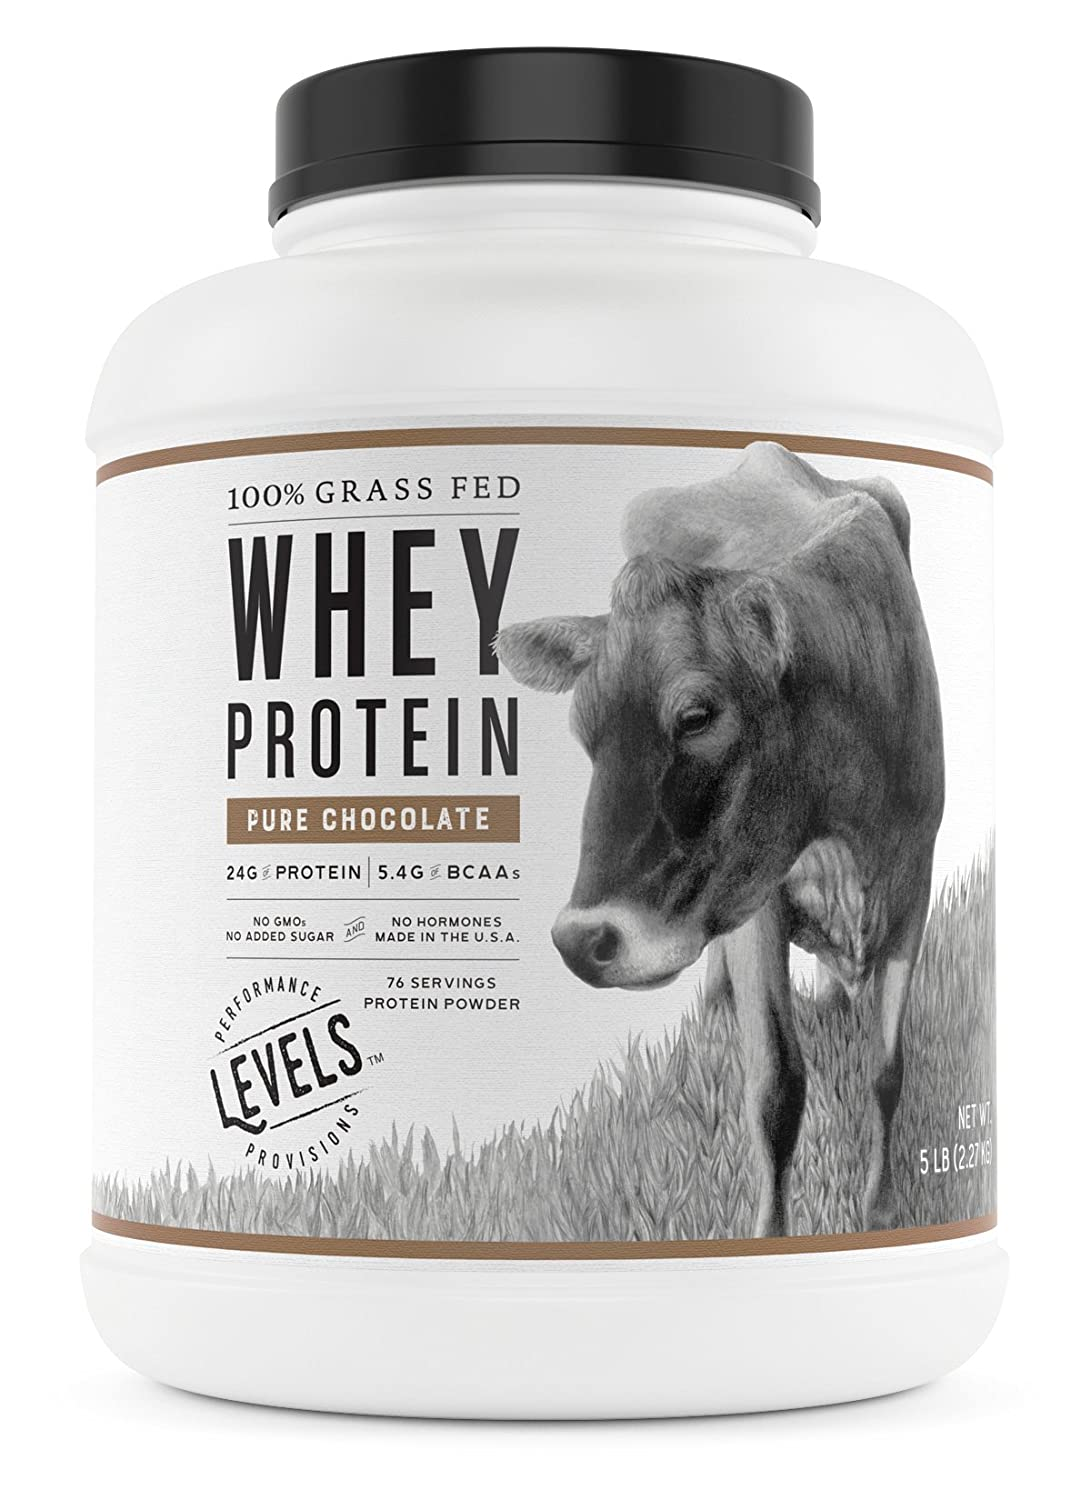 Levels 5LB Pure Chocolate 100% Grass Fed Whey Protein, Undenatured, No GMOs